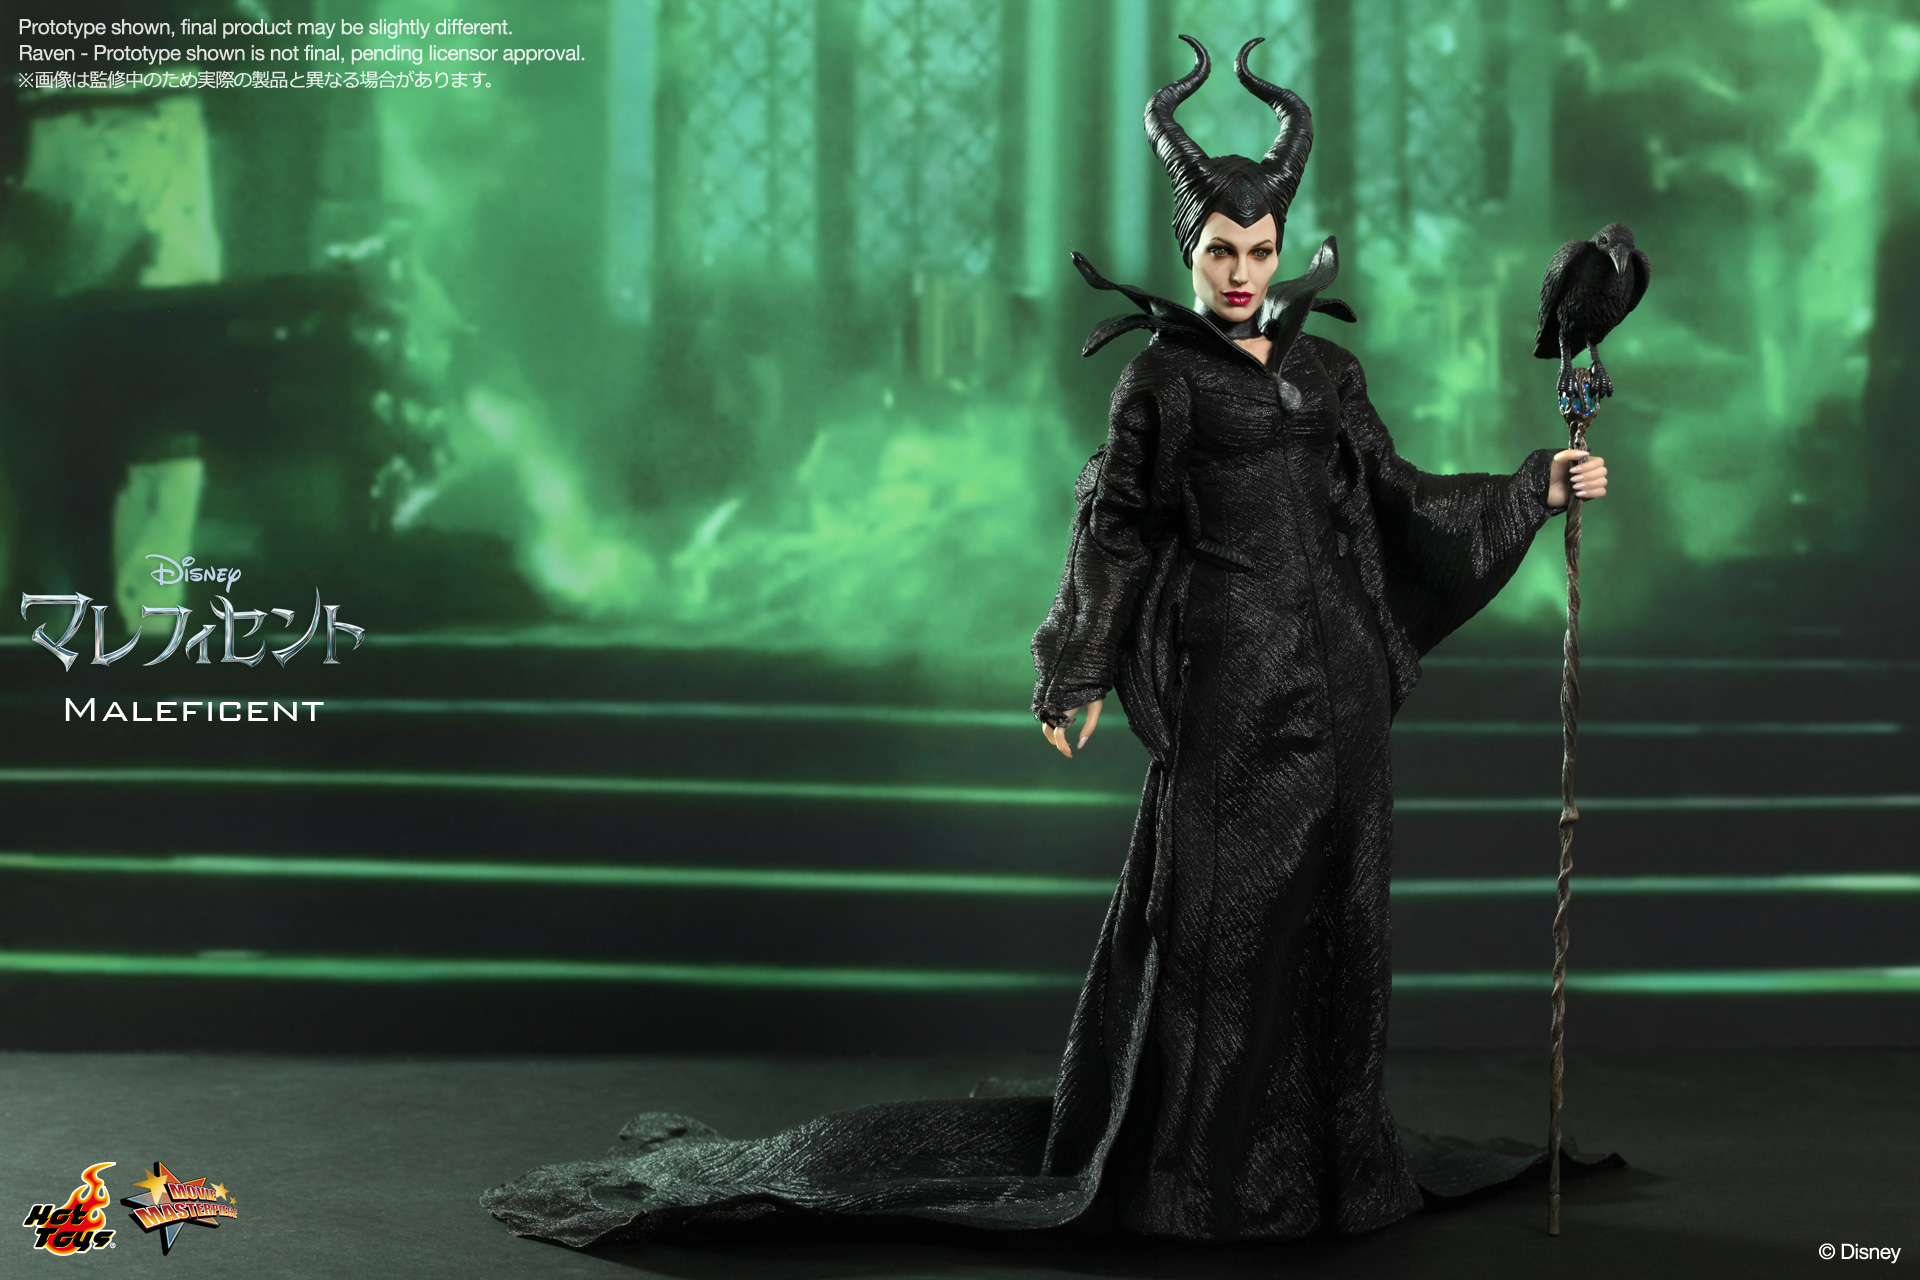 http://www.hottoys.jp/catalog/swfdata/ht3429/imgview_image/up_2.jpg